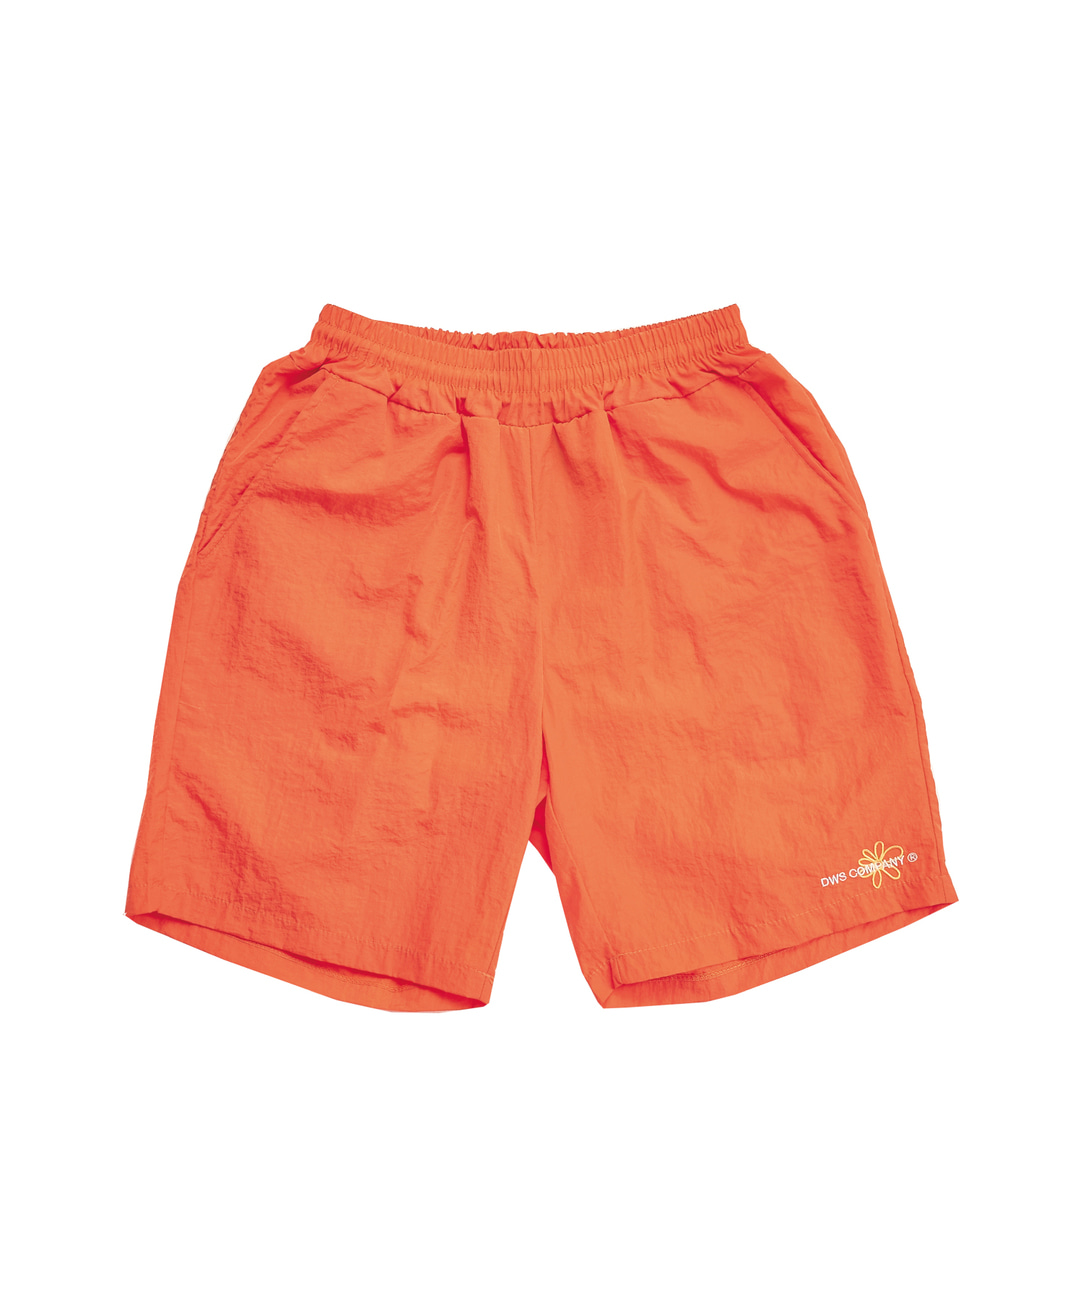 DWS FLOWER LOGO SHORTS(ORANGE)